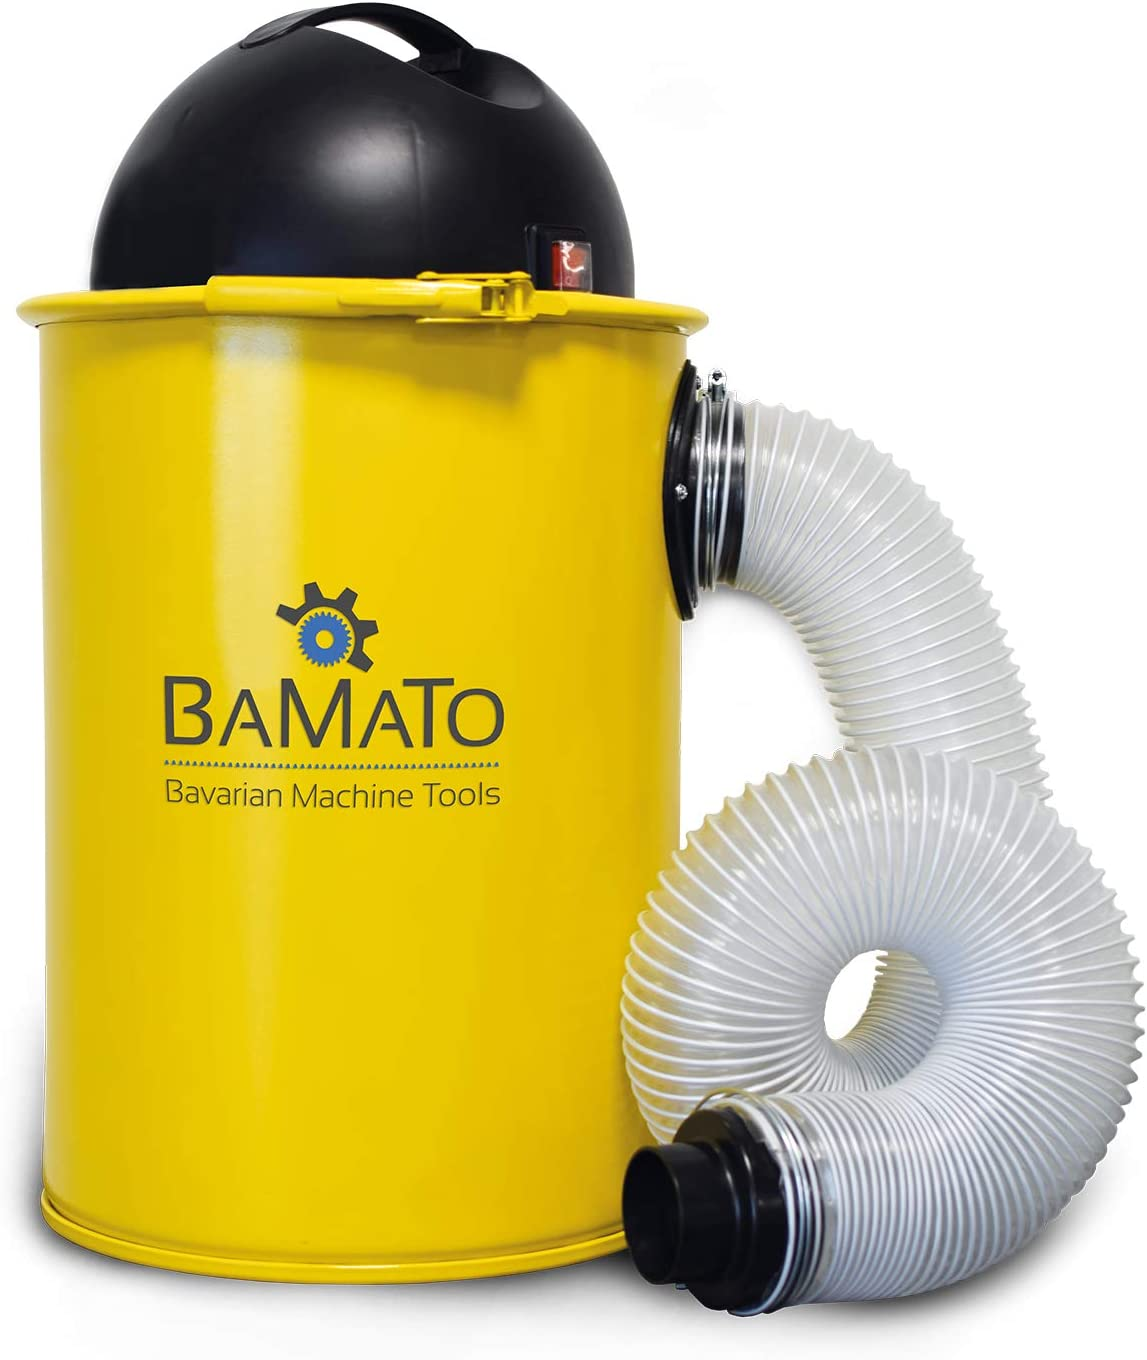 XXL-Lieferumfang BAMATO AB-110 inkl 230 V Adapter Set Absauganlage